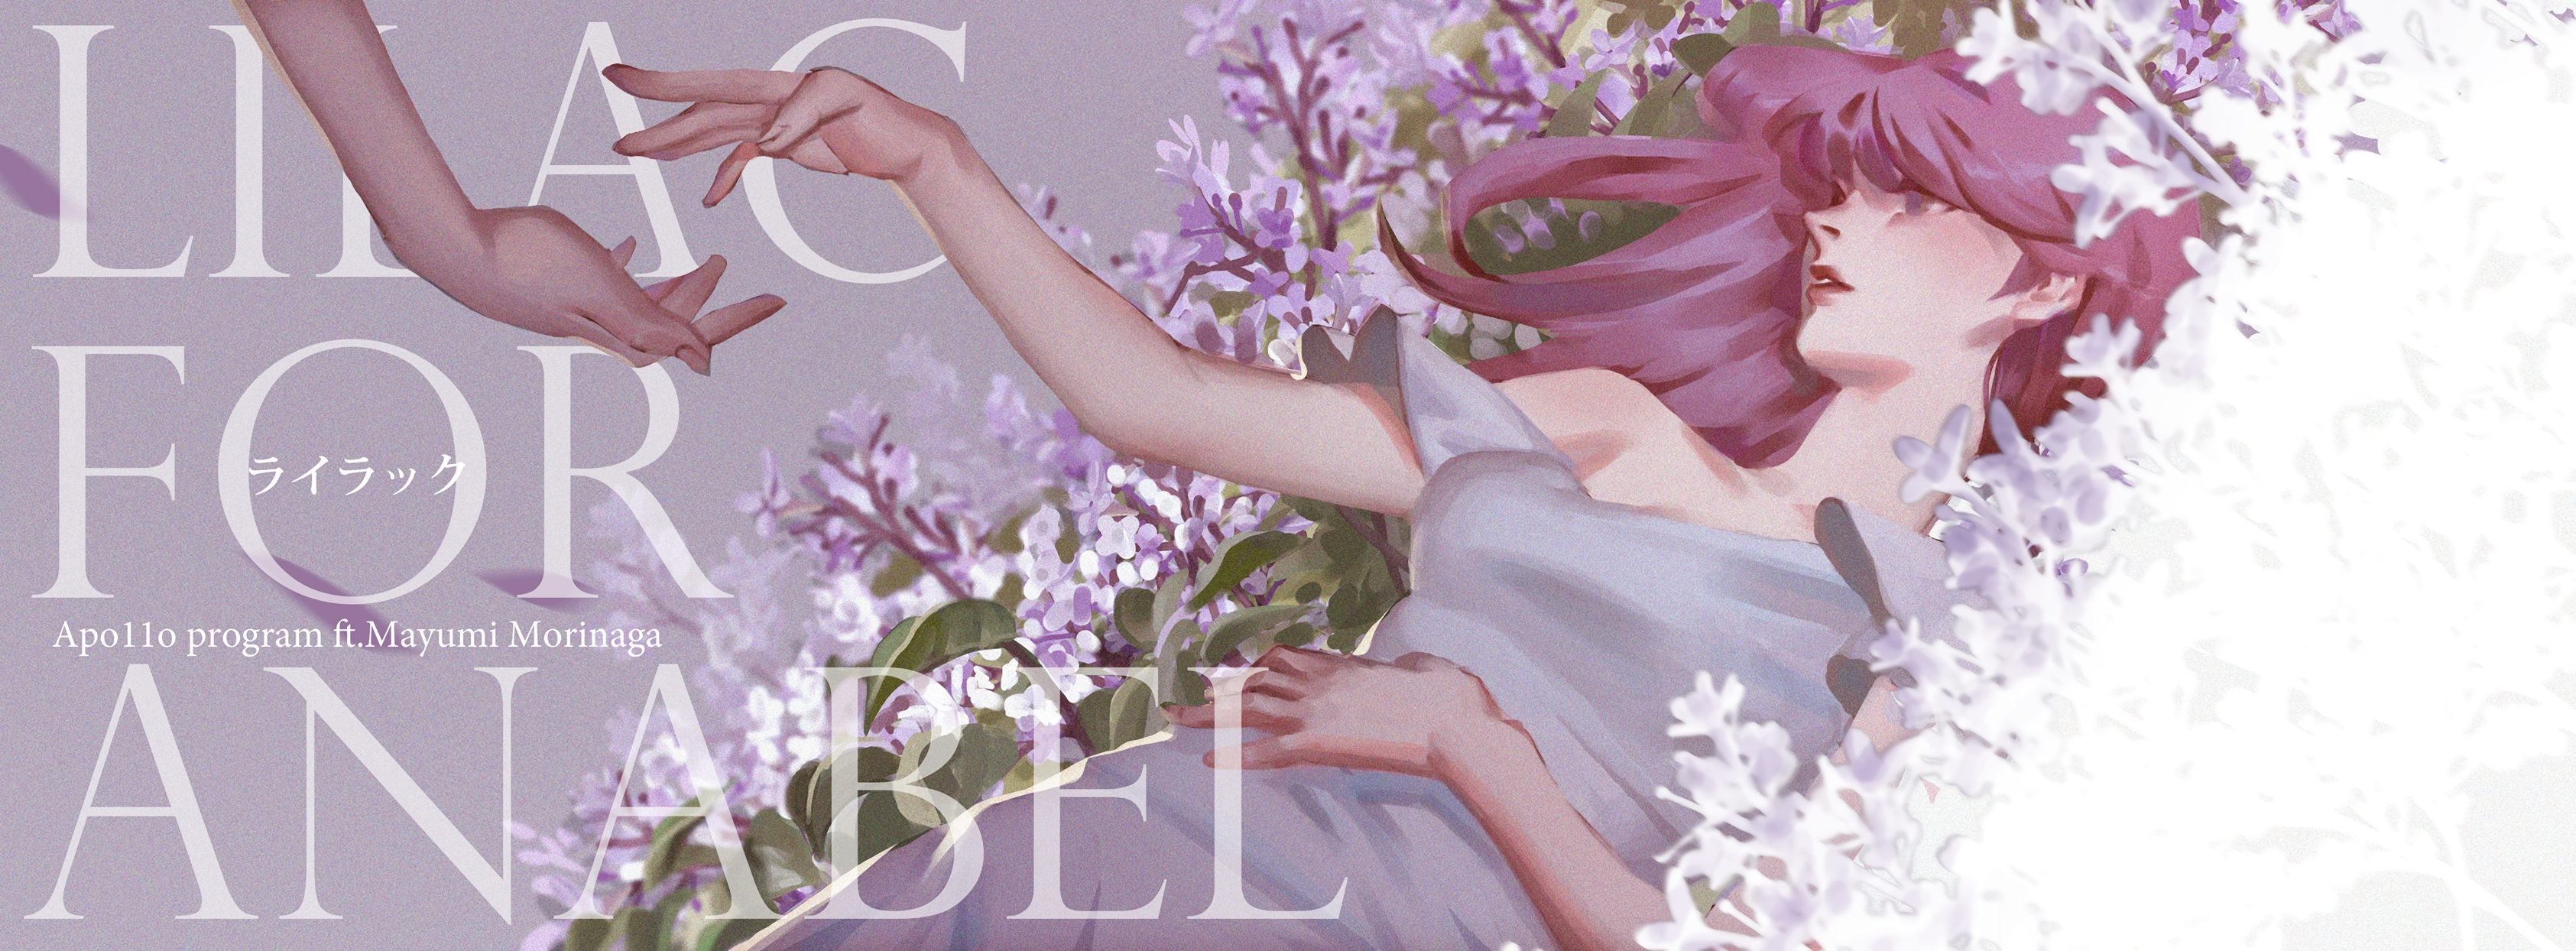 Lilac for Anabel.png